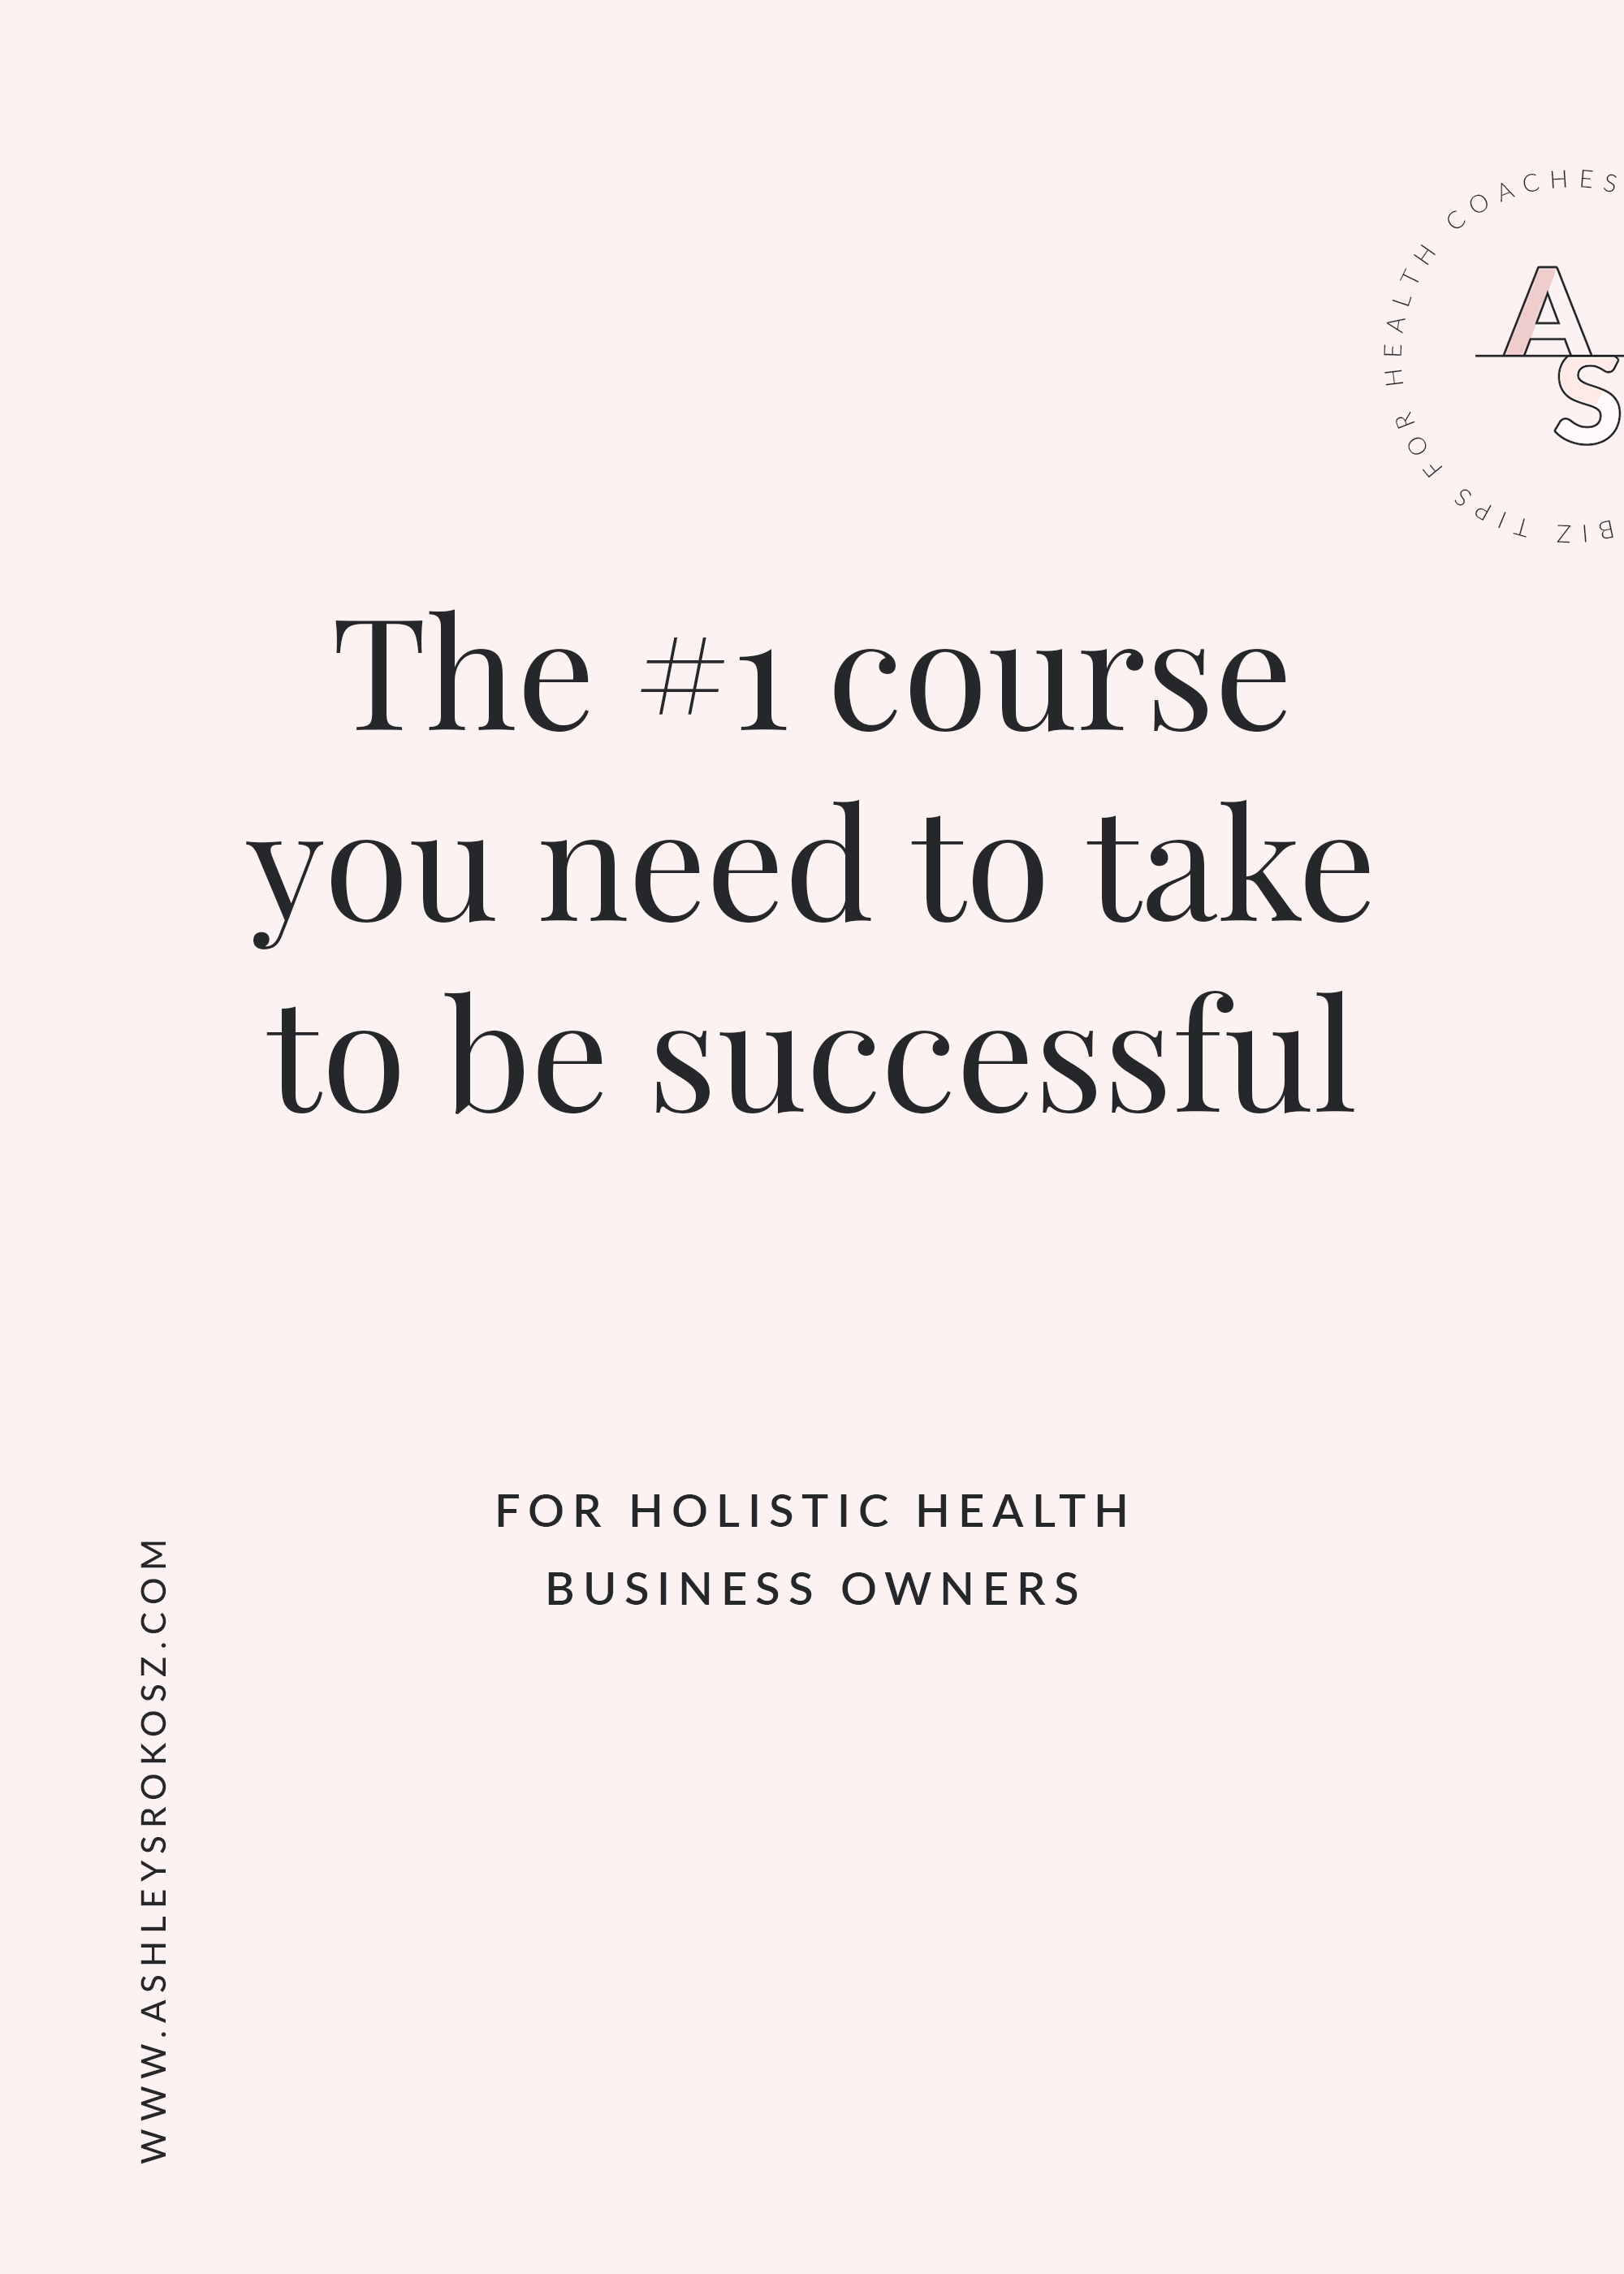 The #1 course you need to take to be successful small.png